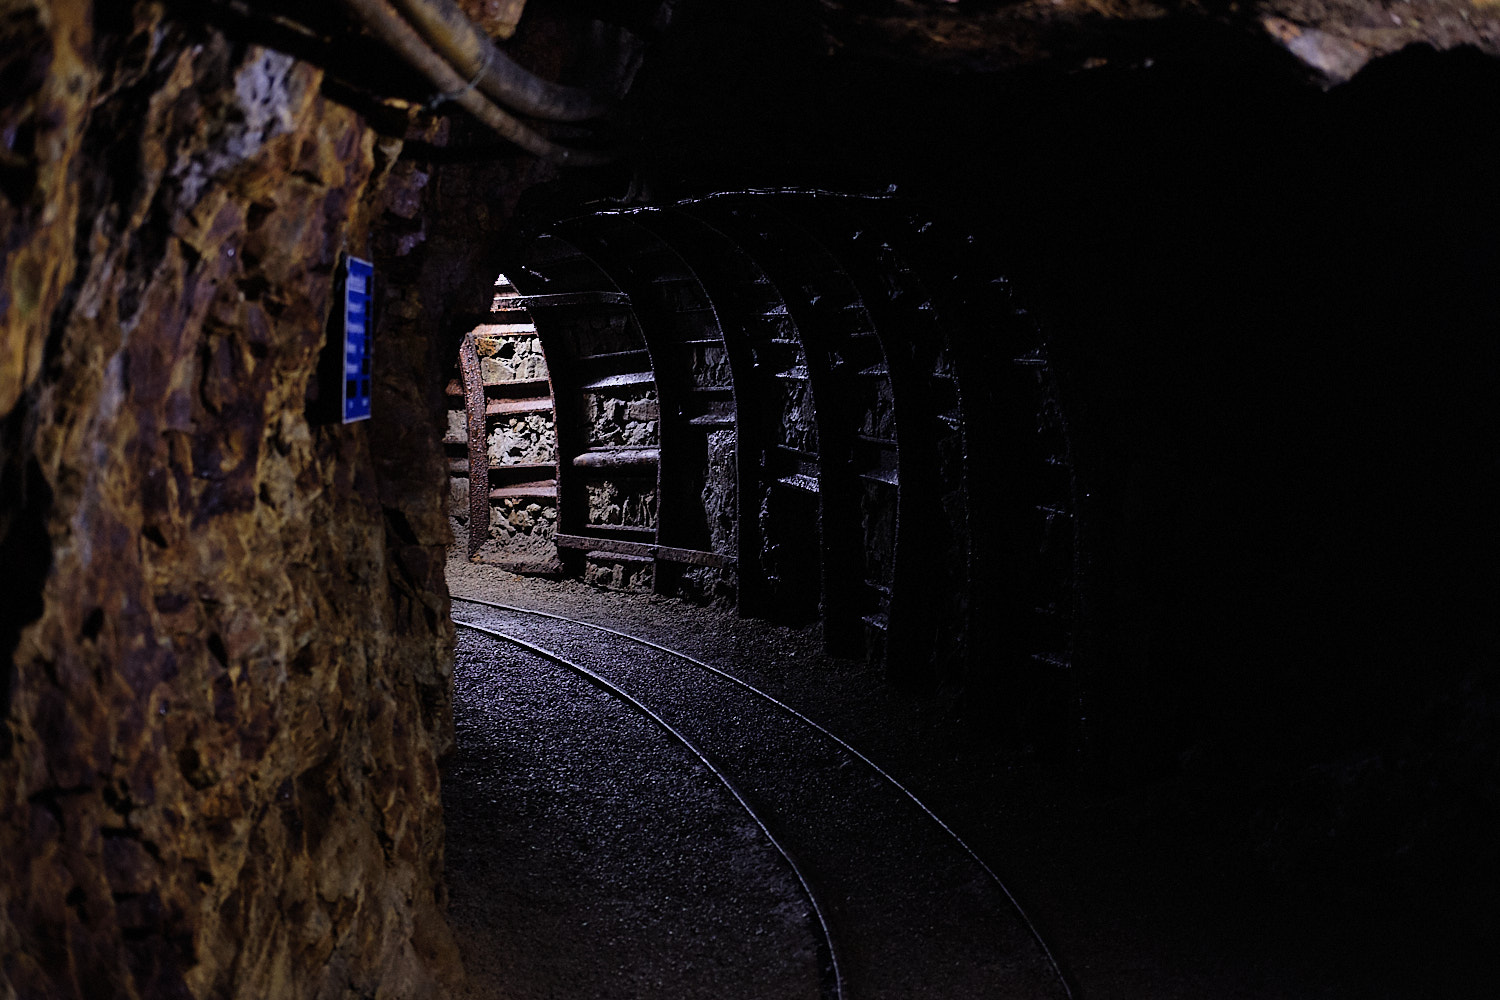 Museum of the graphite mines in Hauzenberg, Germany